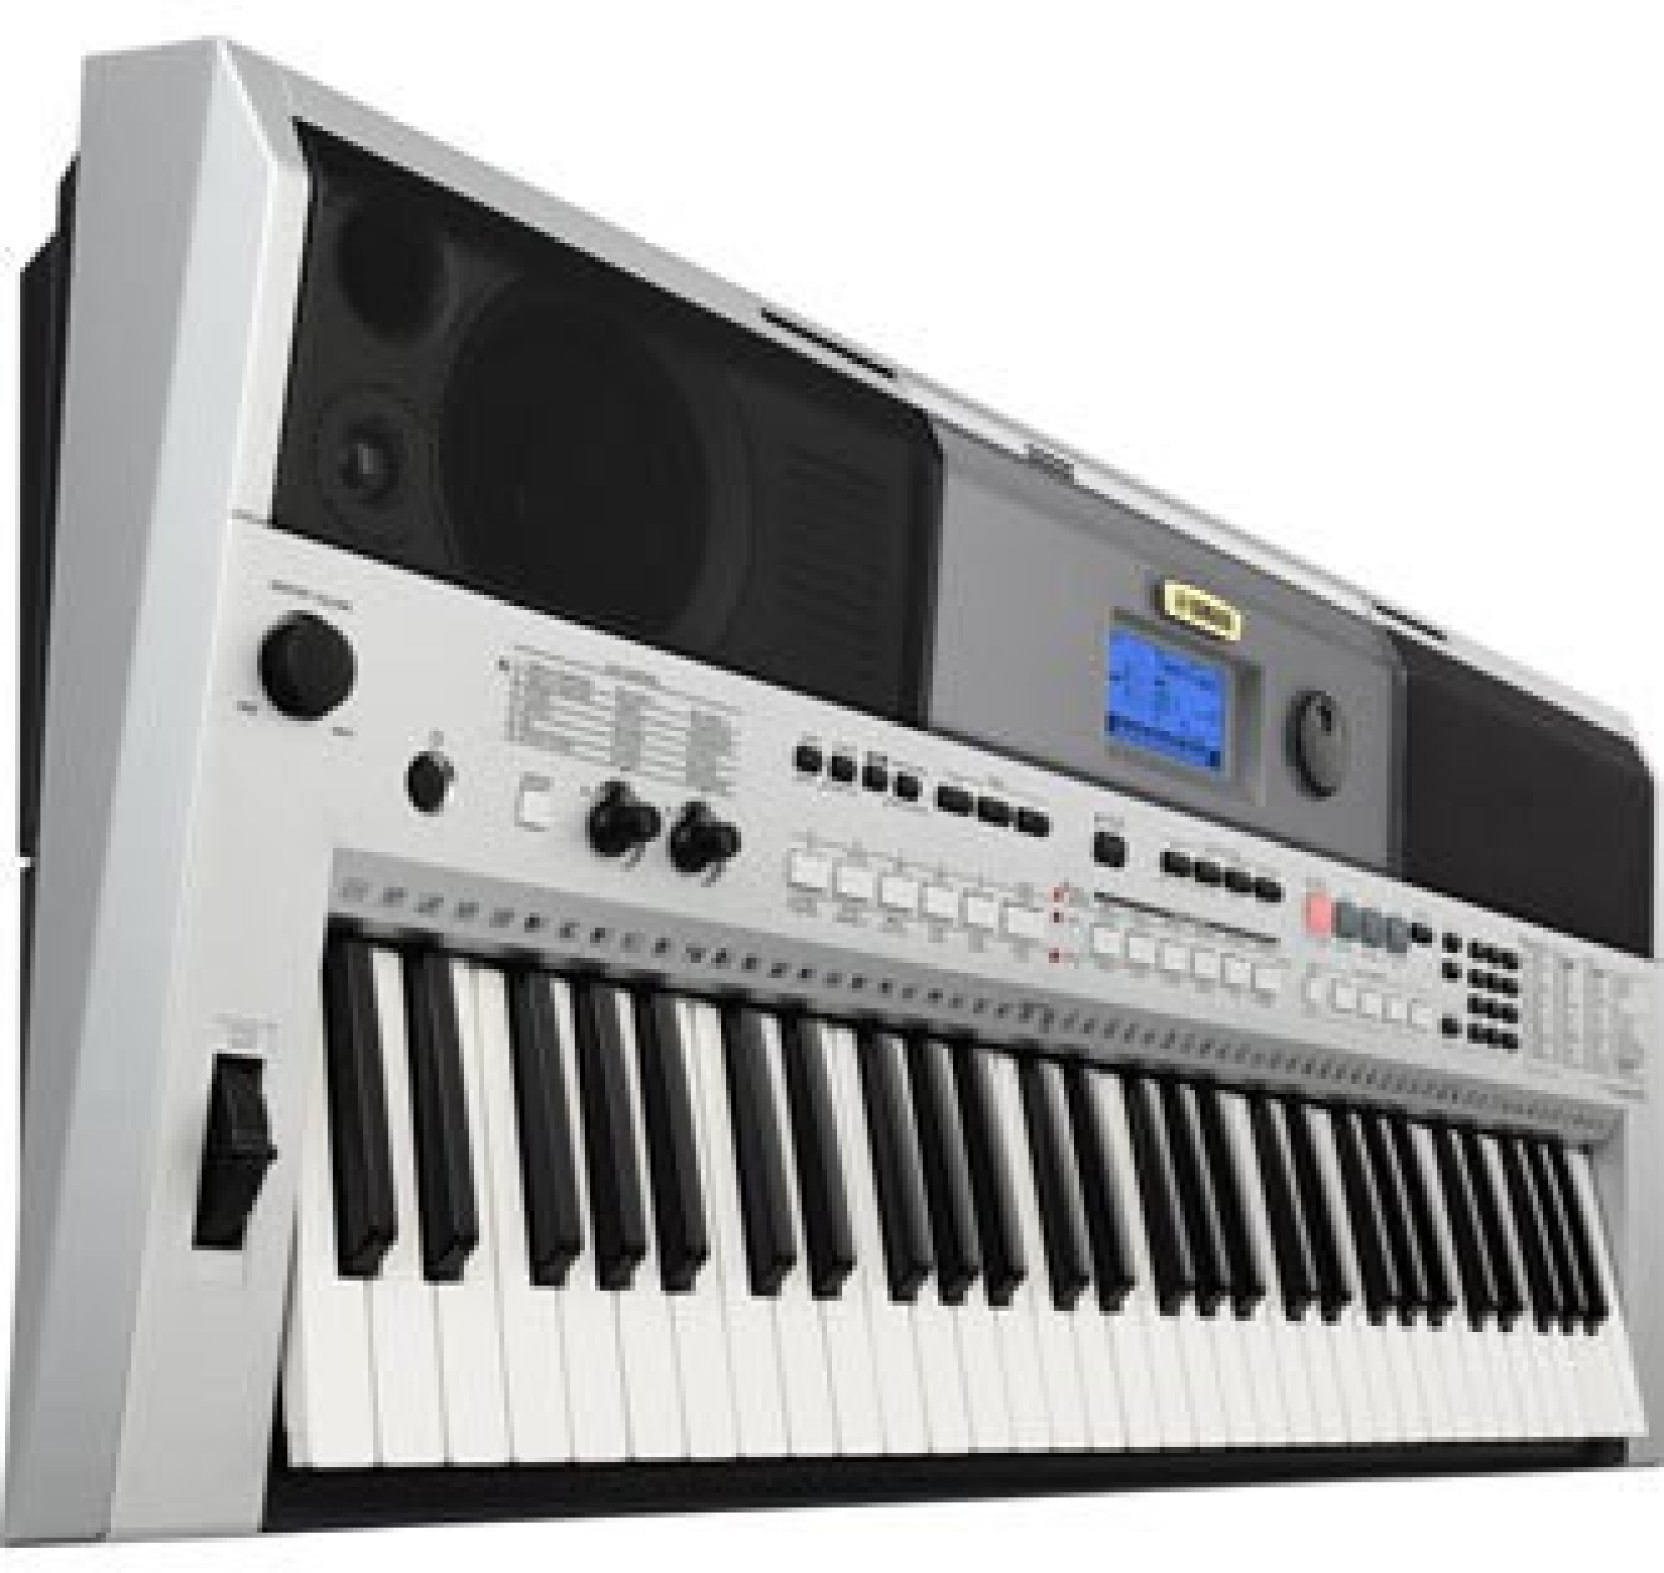 Yamaha psr i455 portable keyboard price in india buy for Yamaha psr e453 specs